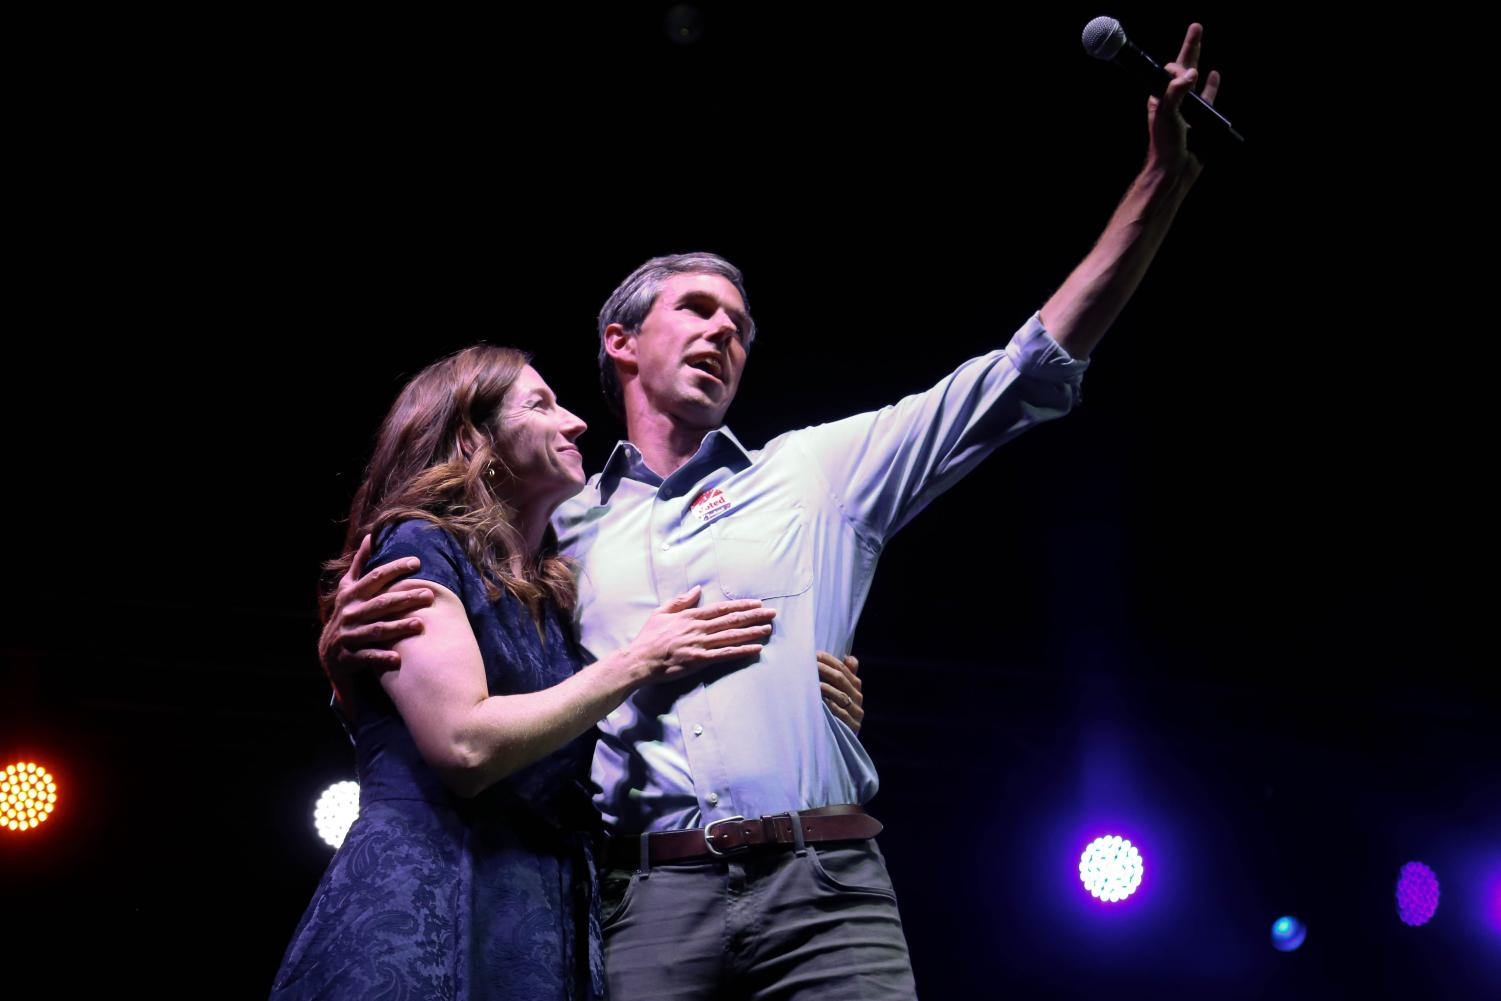 Democratic challenger O'Rourke and his wife Amy O'Rourke say their final goodbye after his watch party on Tuesday, Nov. 6 at the Southwest University Park.